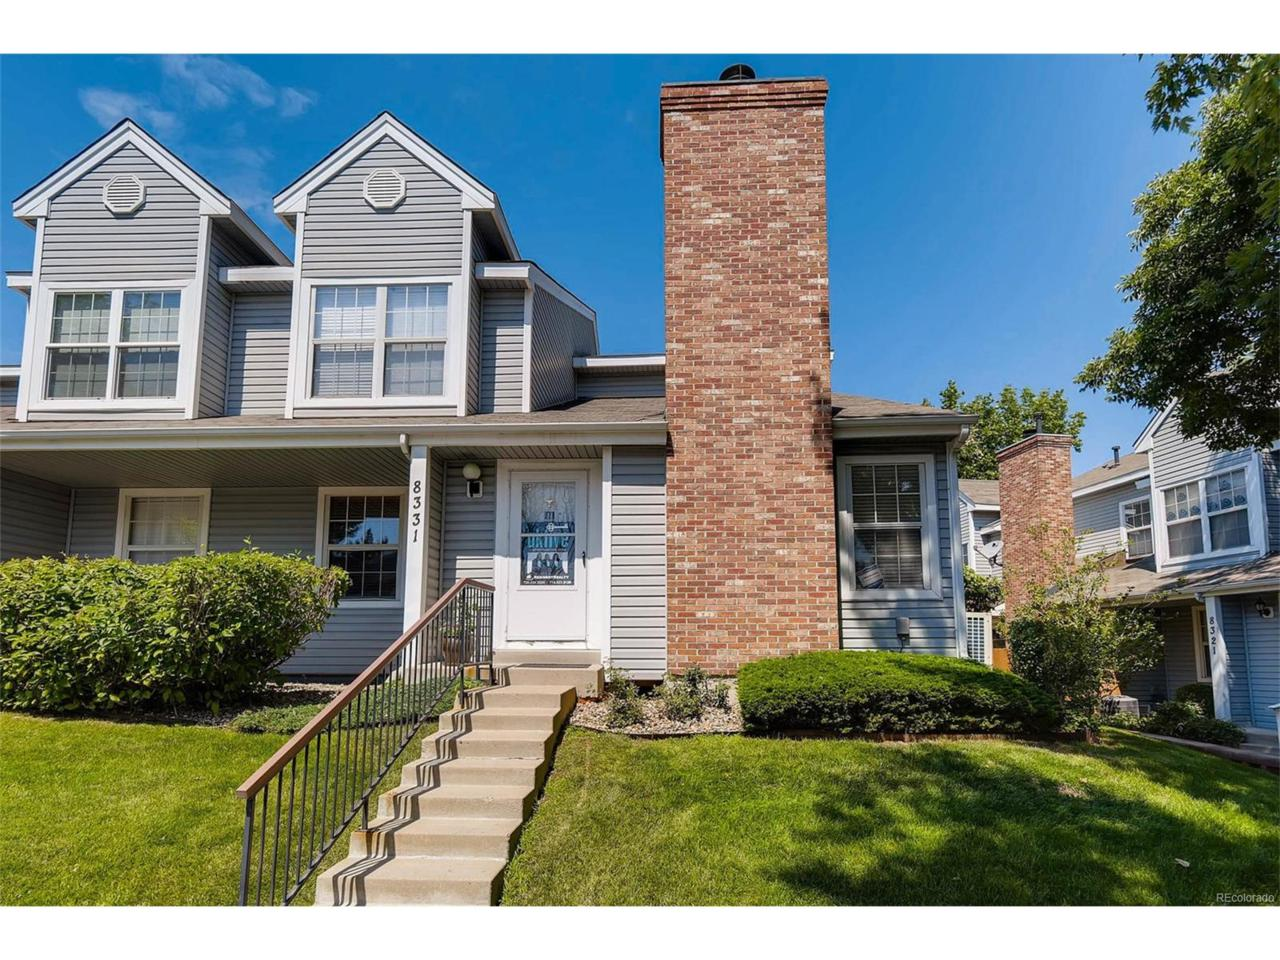 8331 W 90th Place, Westminster, CO 80021 (MLS #8609778) :: 8z Real Estate